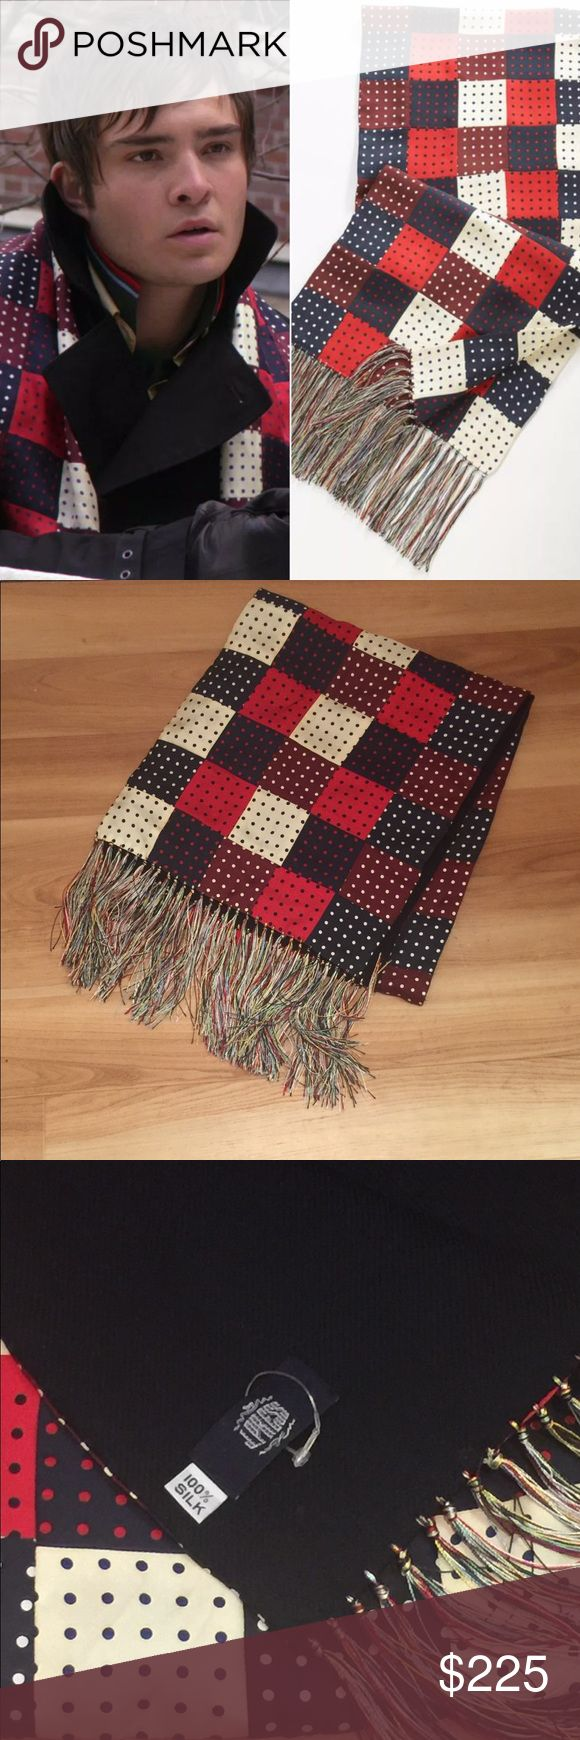 """J. Press Silk red navy patchwork scarf Chuck Bass Hey upper east siders! For sale is a gently used J. Press silk scarf -- the iconic patchwork/plaid scarf seen on Chuck Bass in multiple episodes of Gossip Girl! Excellent condition. Original retail is $325 but I am open to offers! 100% Silk. 13"""" x 60"""" (without fringe). Hand Made. Please check out my other listings for more great Gossip Girl items! J. Press Accessories Scarves"""